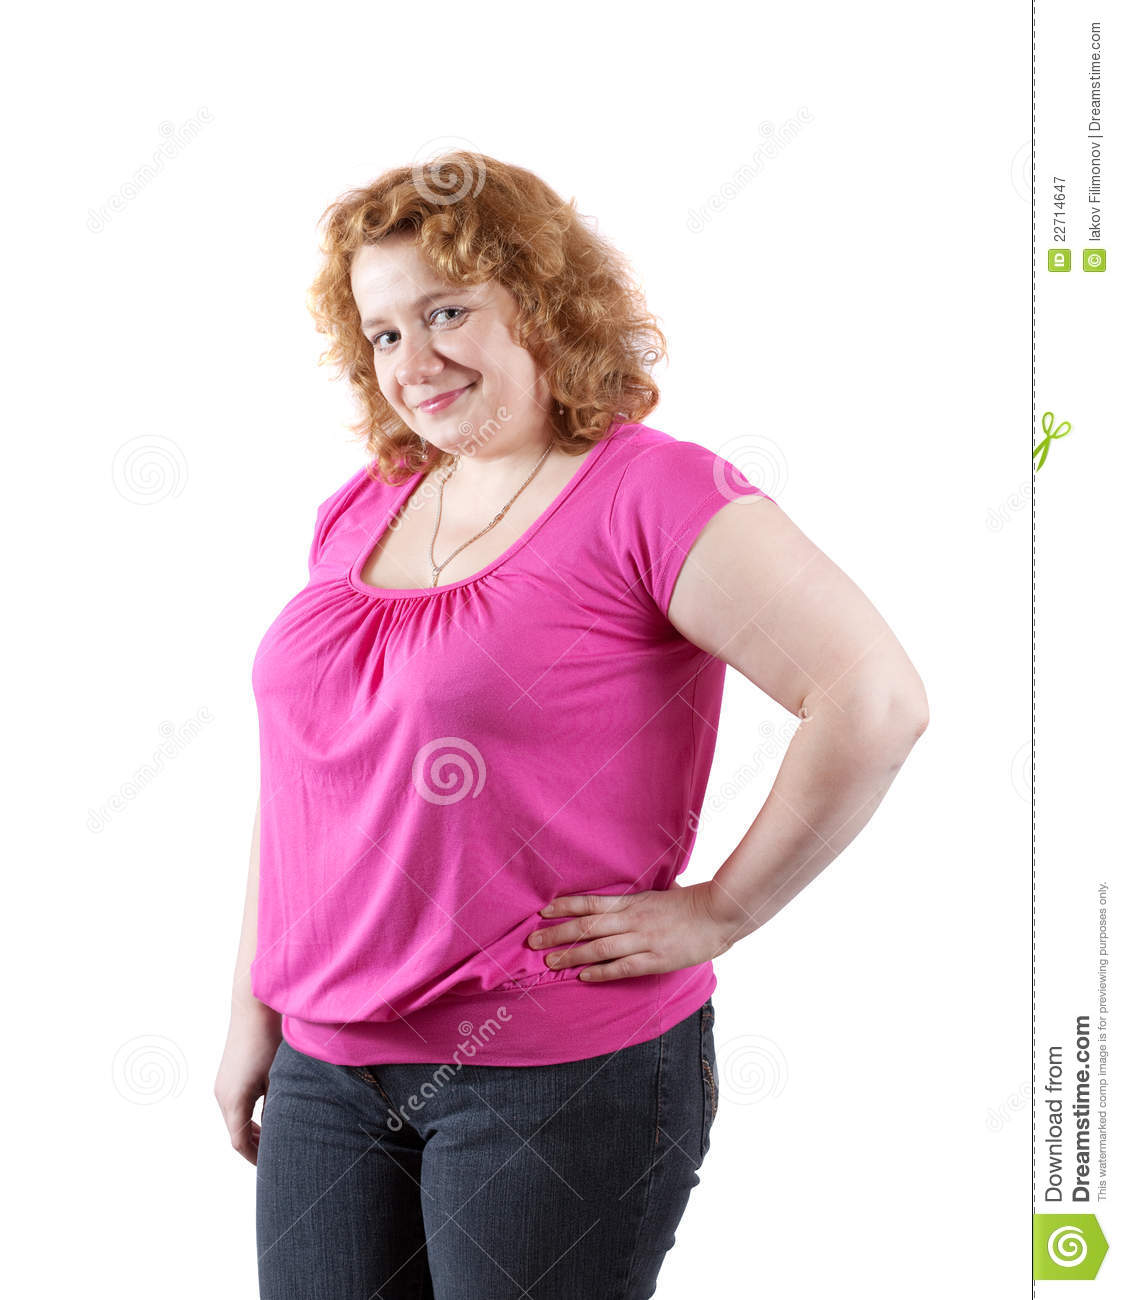 Fat Ugly Woman Stock Image Image Of Background, Girl - 22714647-5409